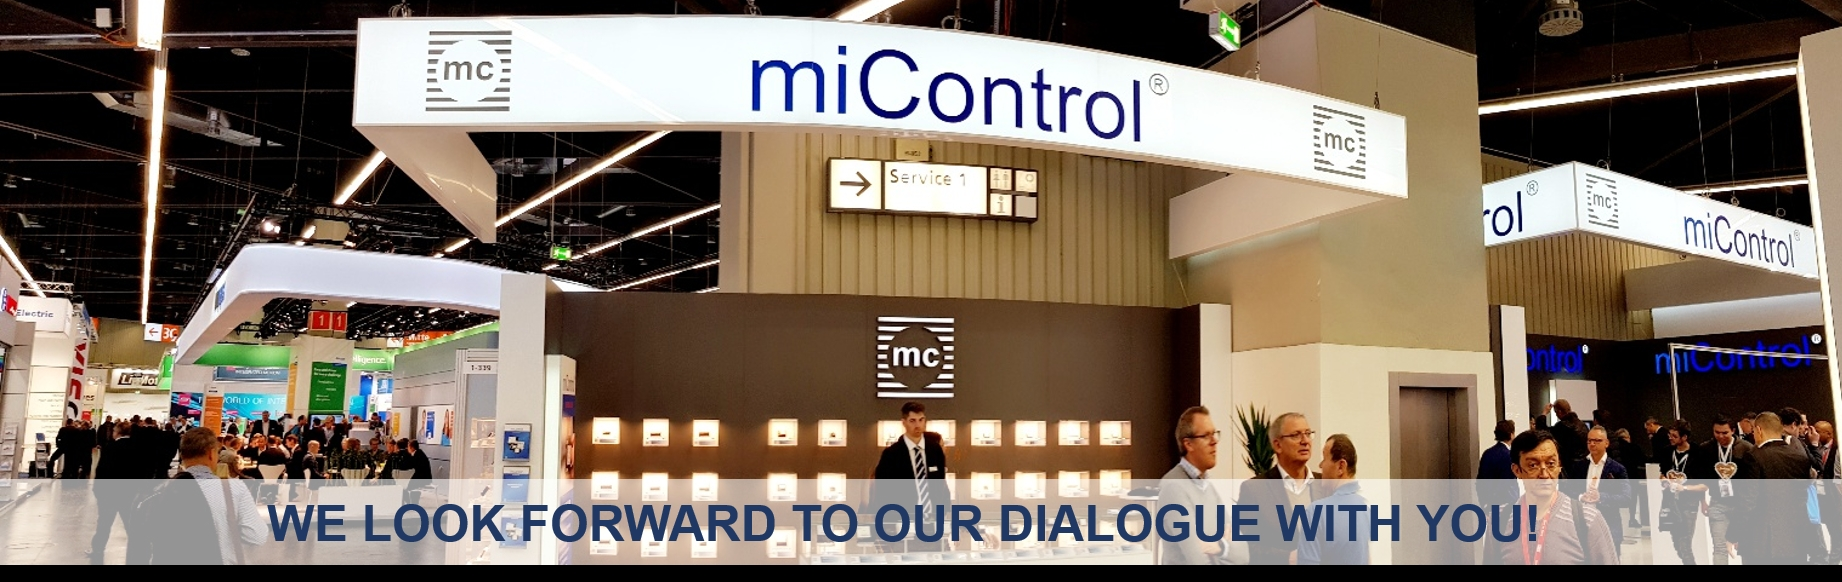 miControl Messstand